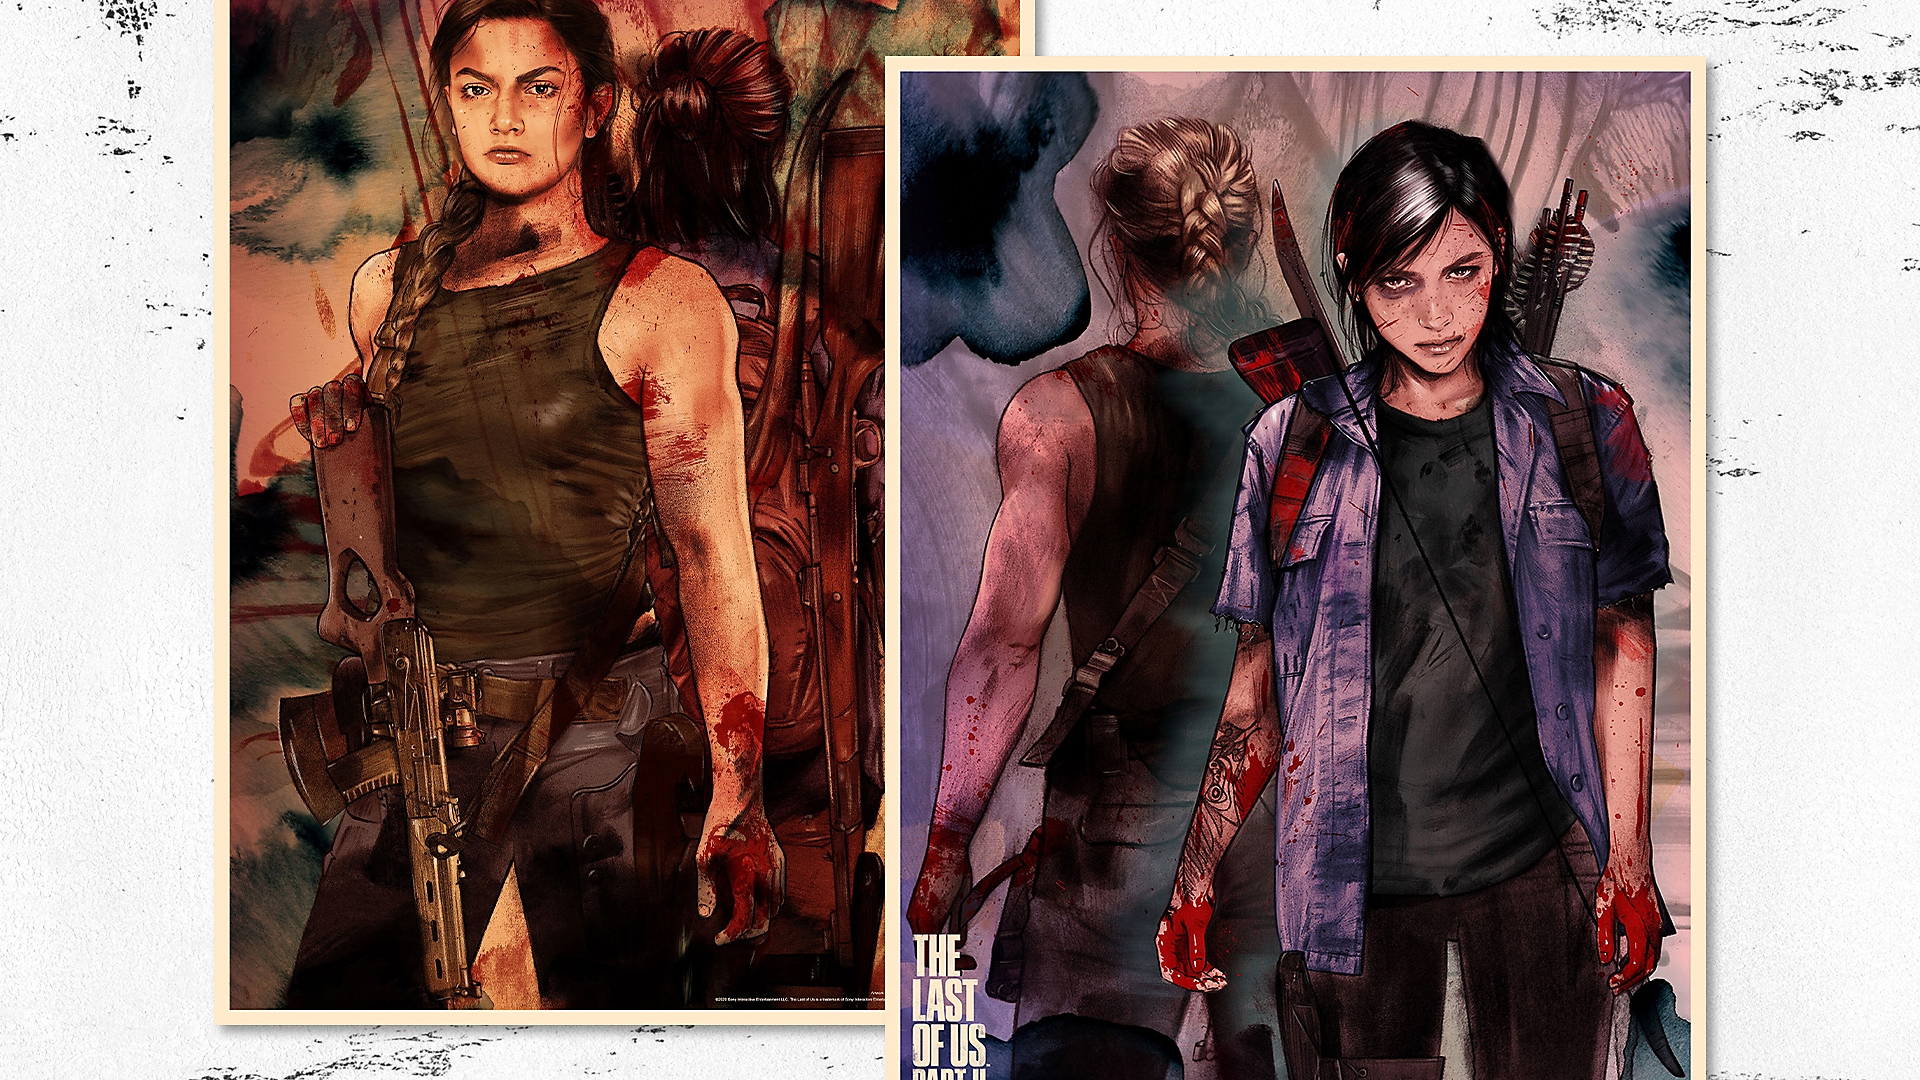 the last of us day mondo posters